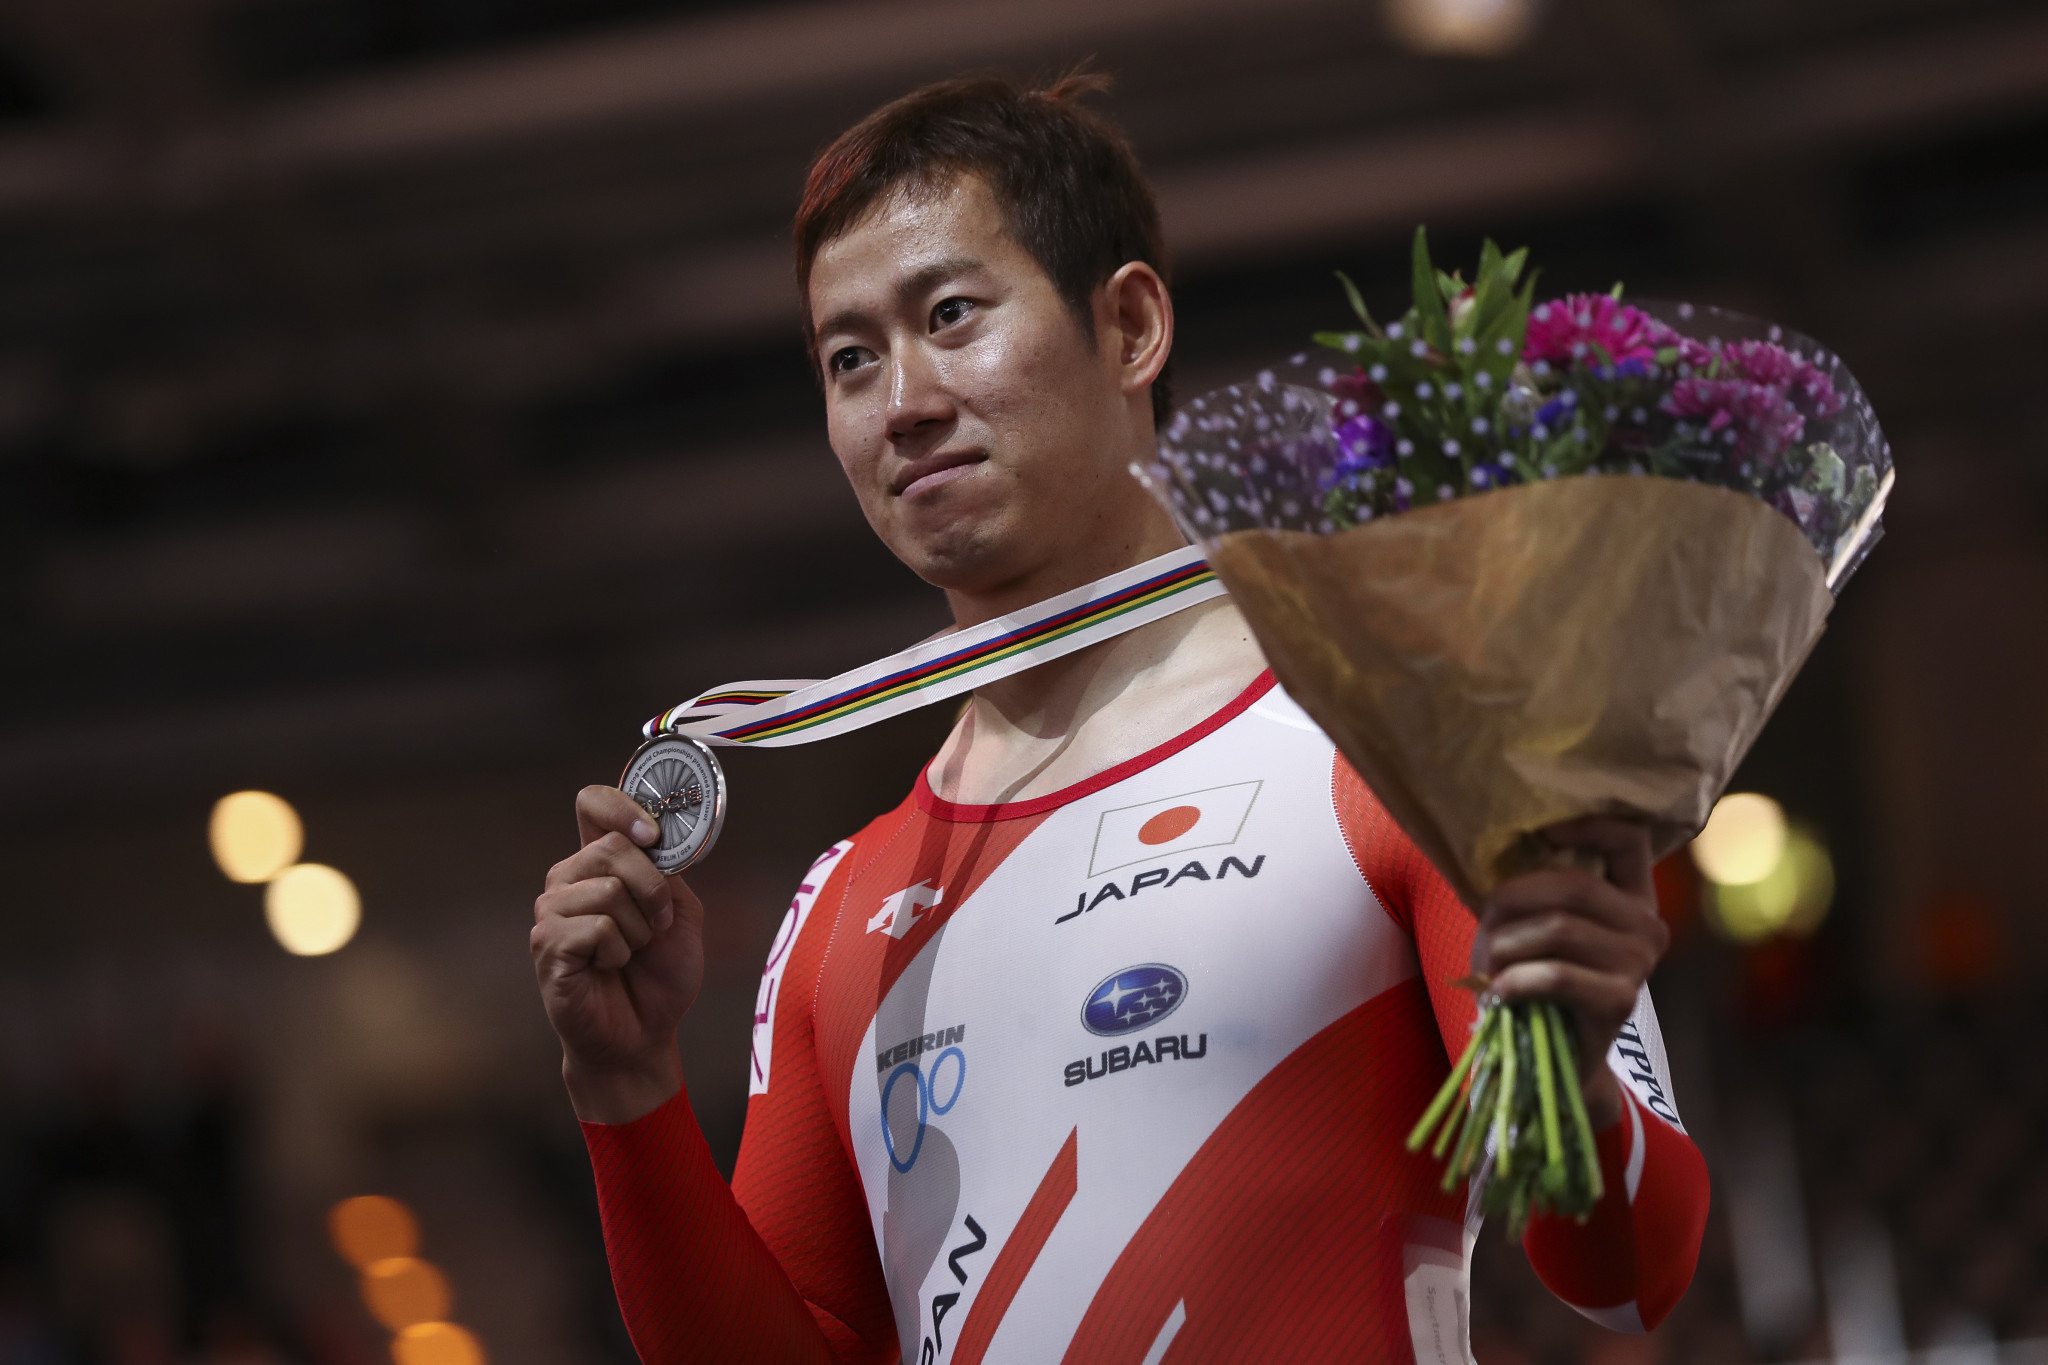 Yuta Wakimoto is one of the favourites in the men's keirin ©Getty Images